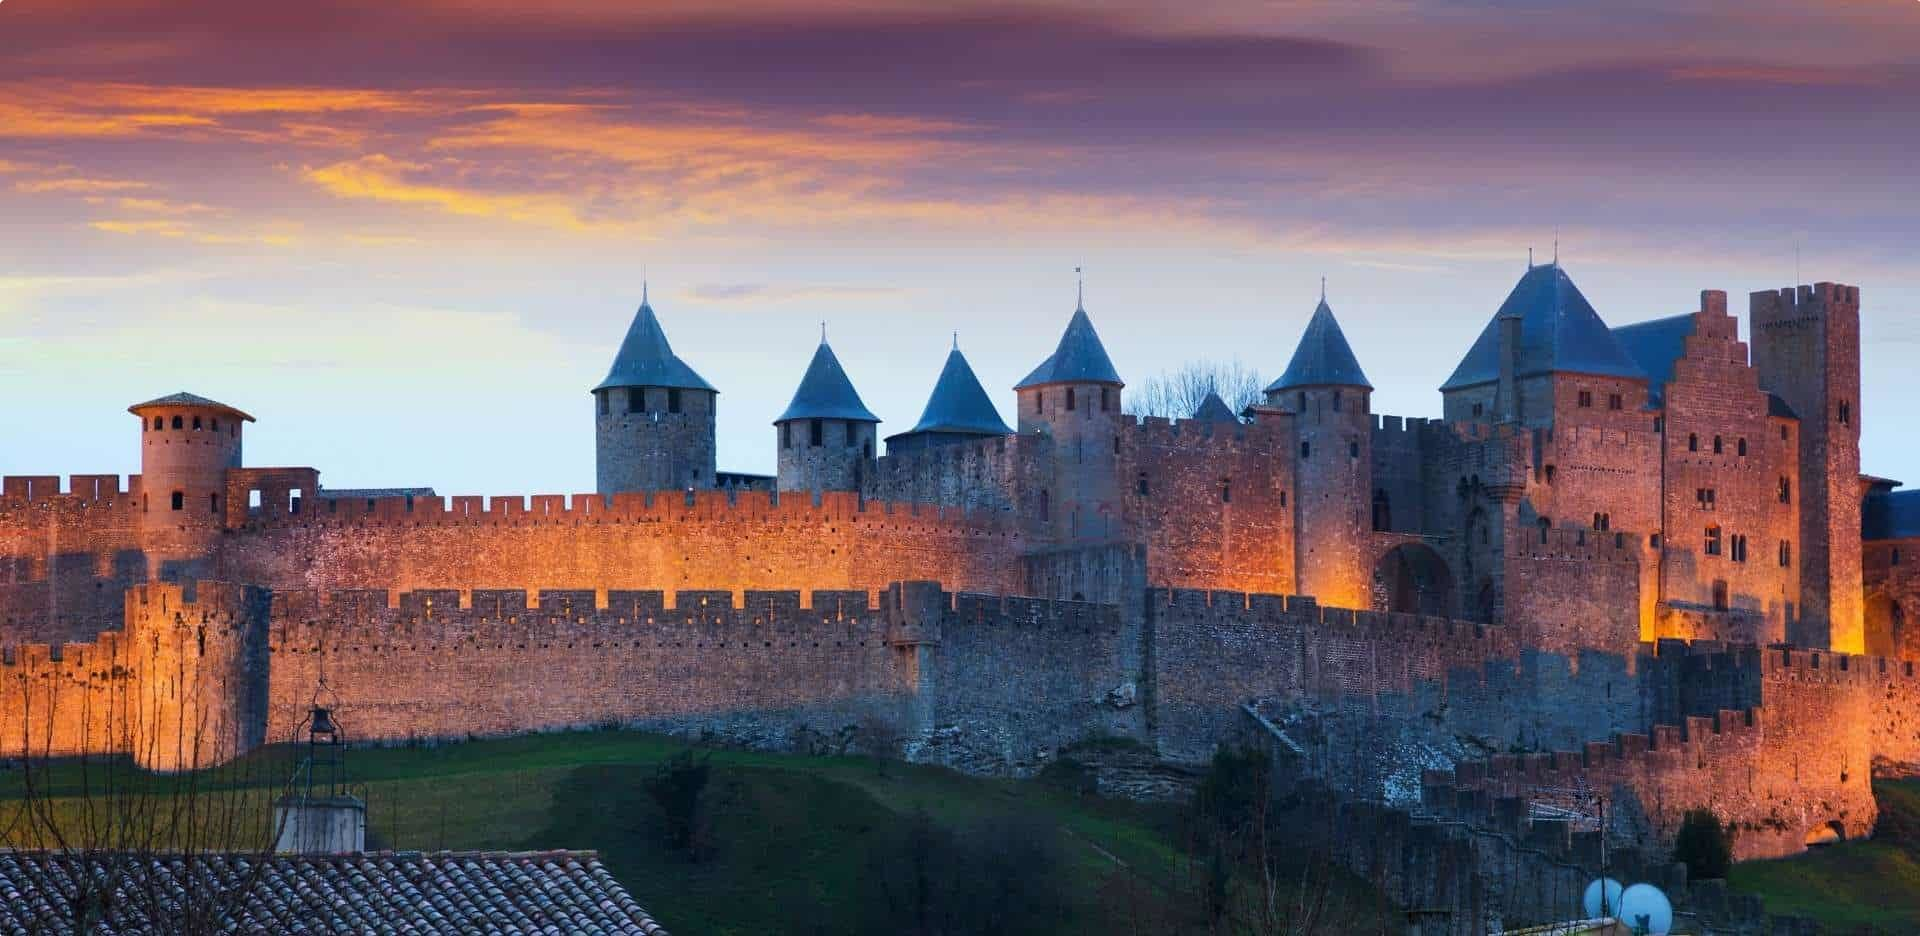 French history; Carcassonne